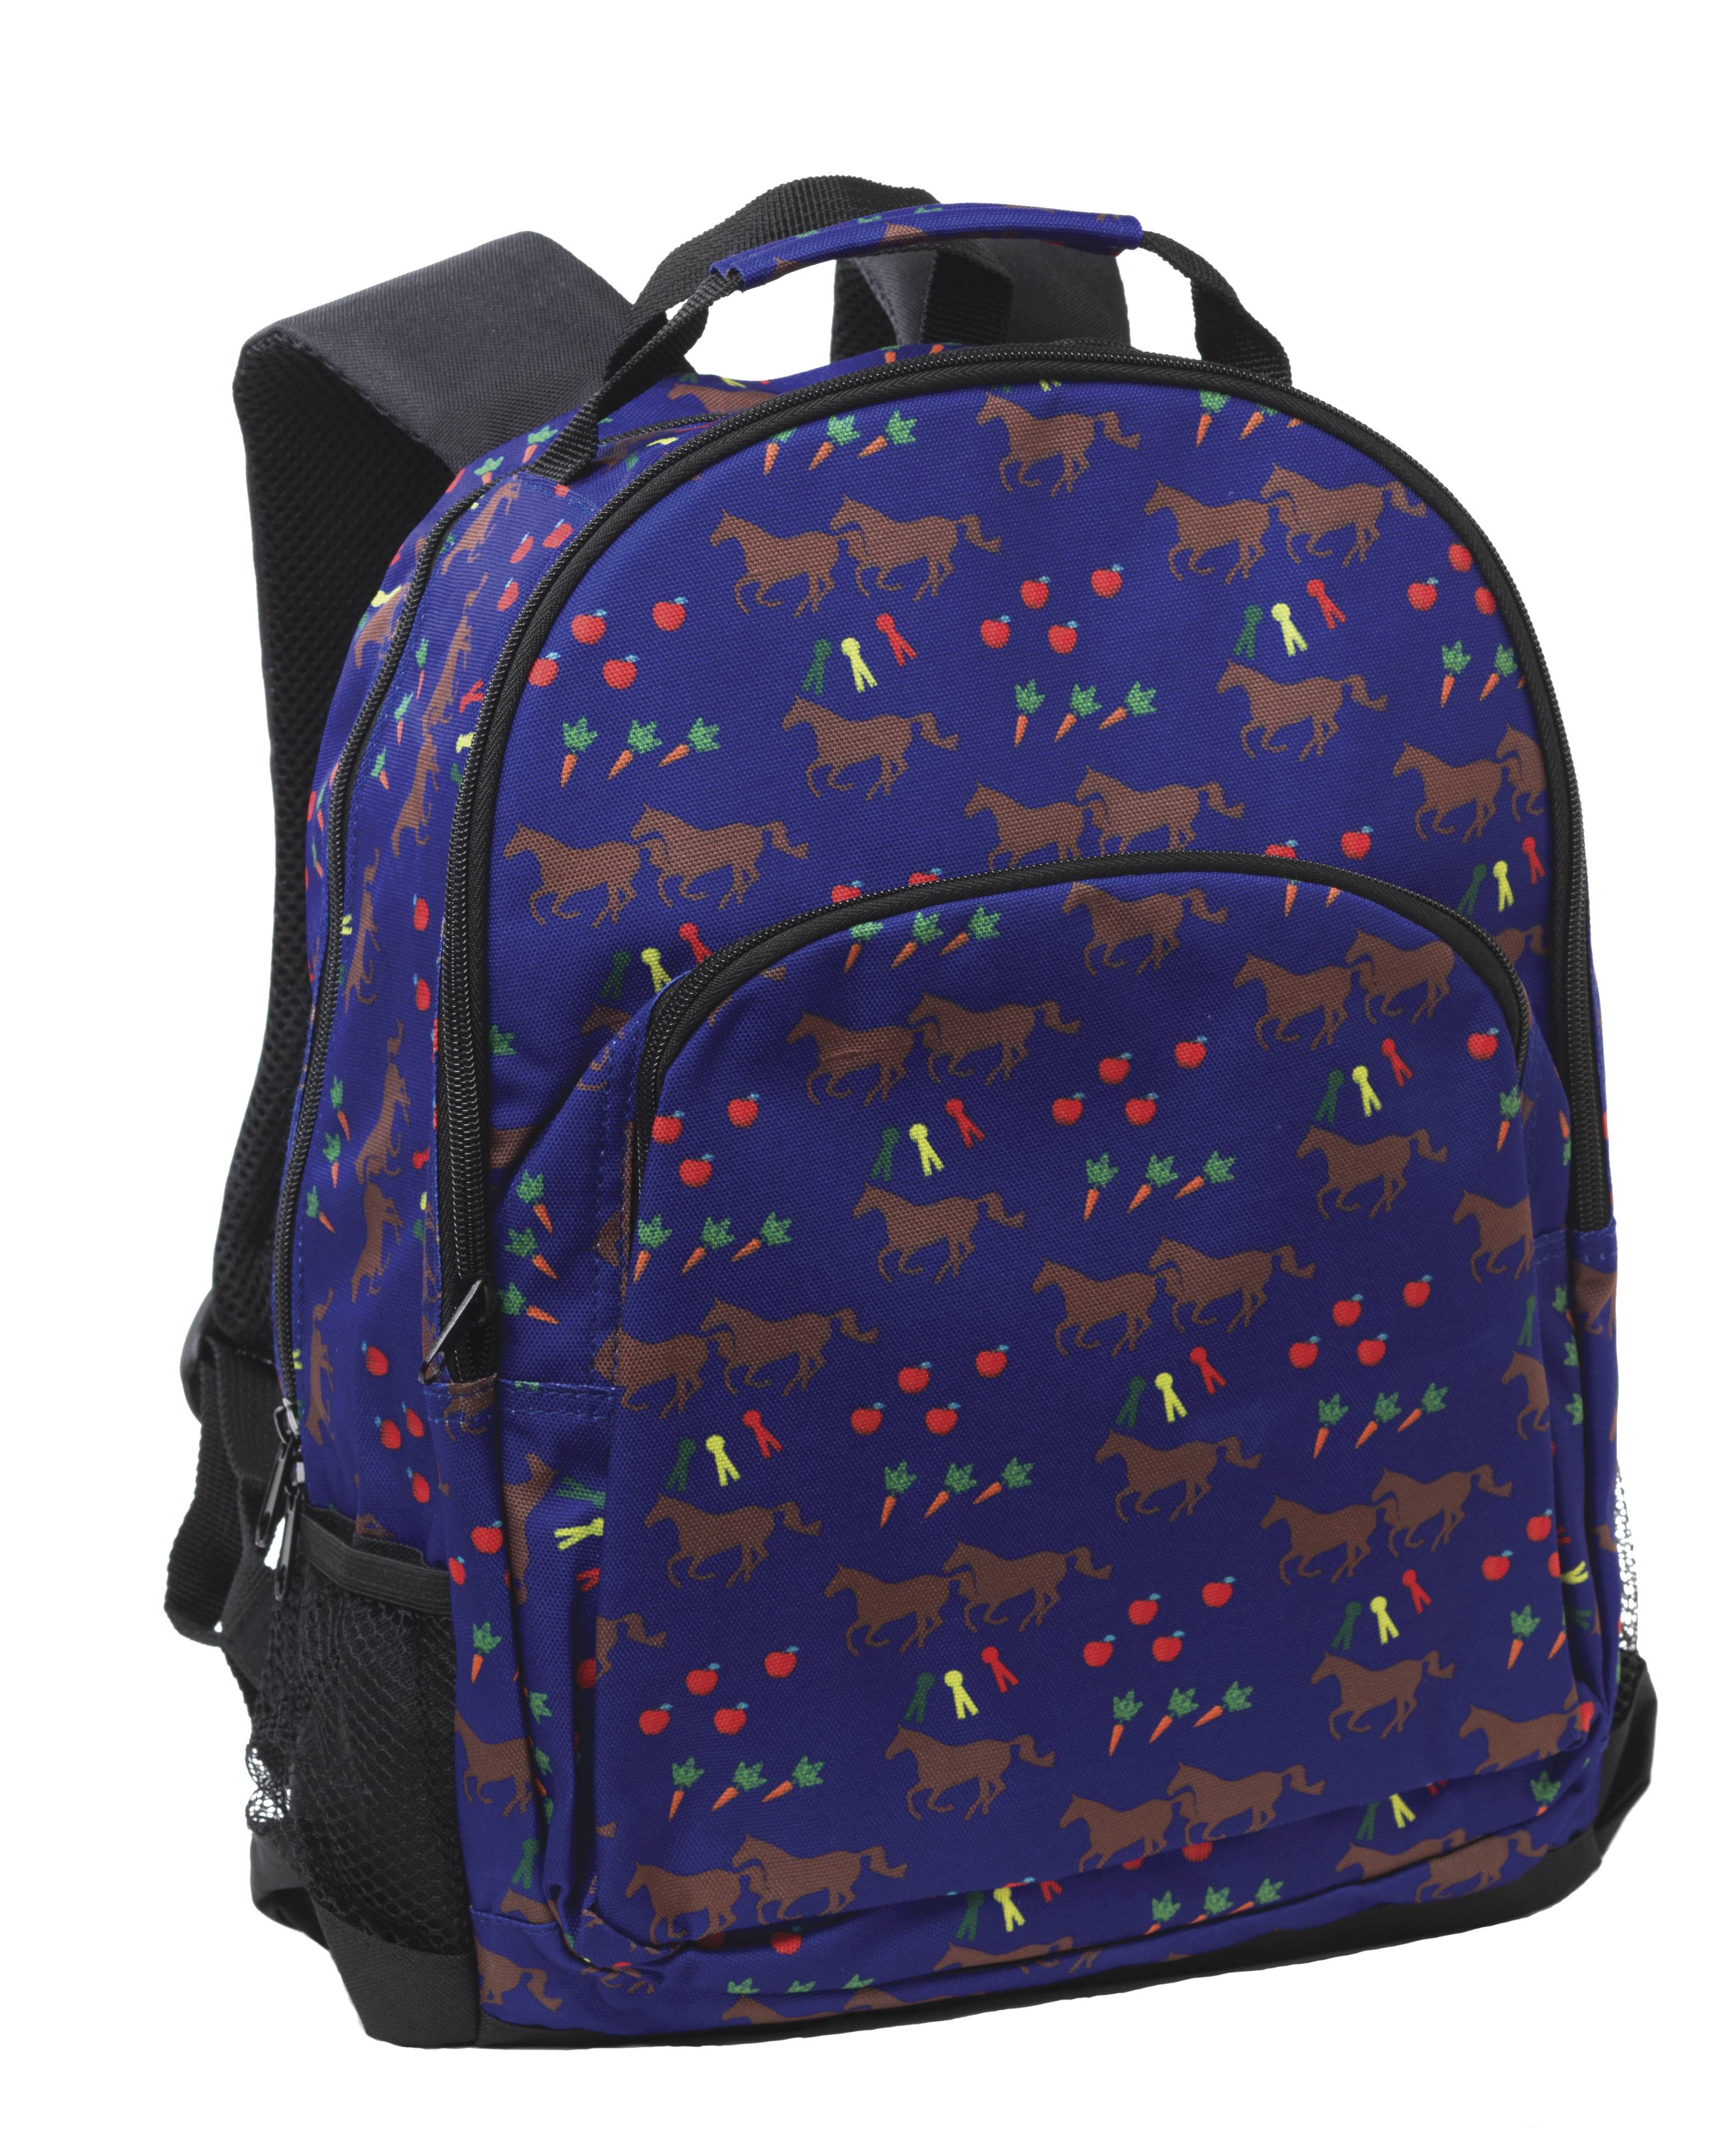 Tek Trek Horses & Apples Backpack